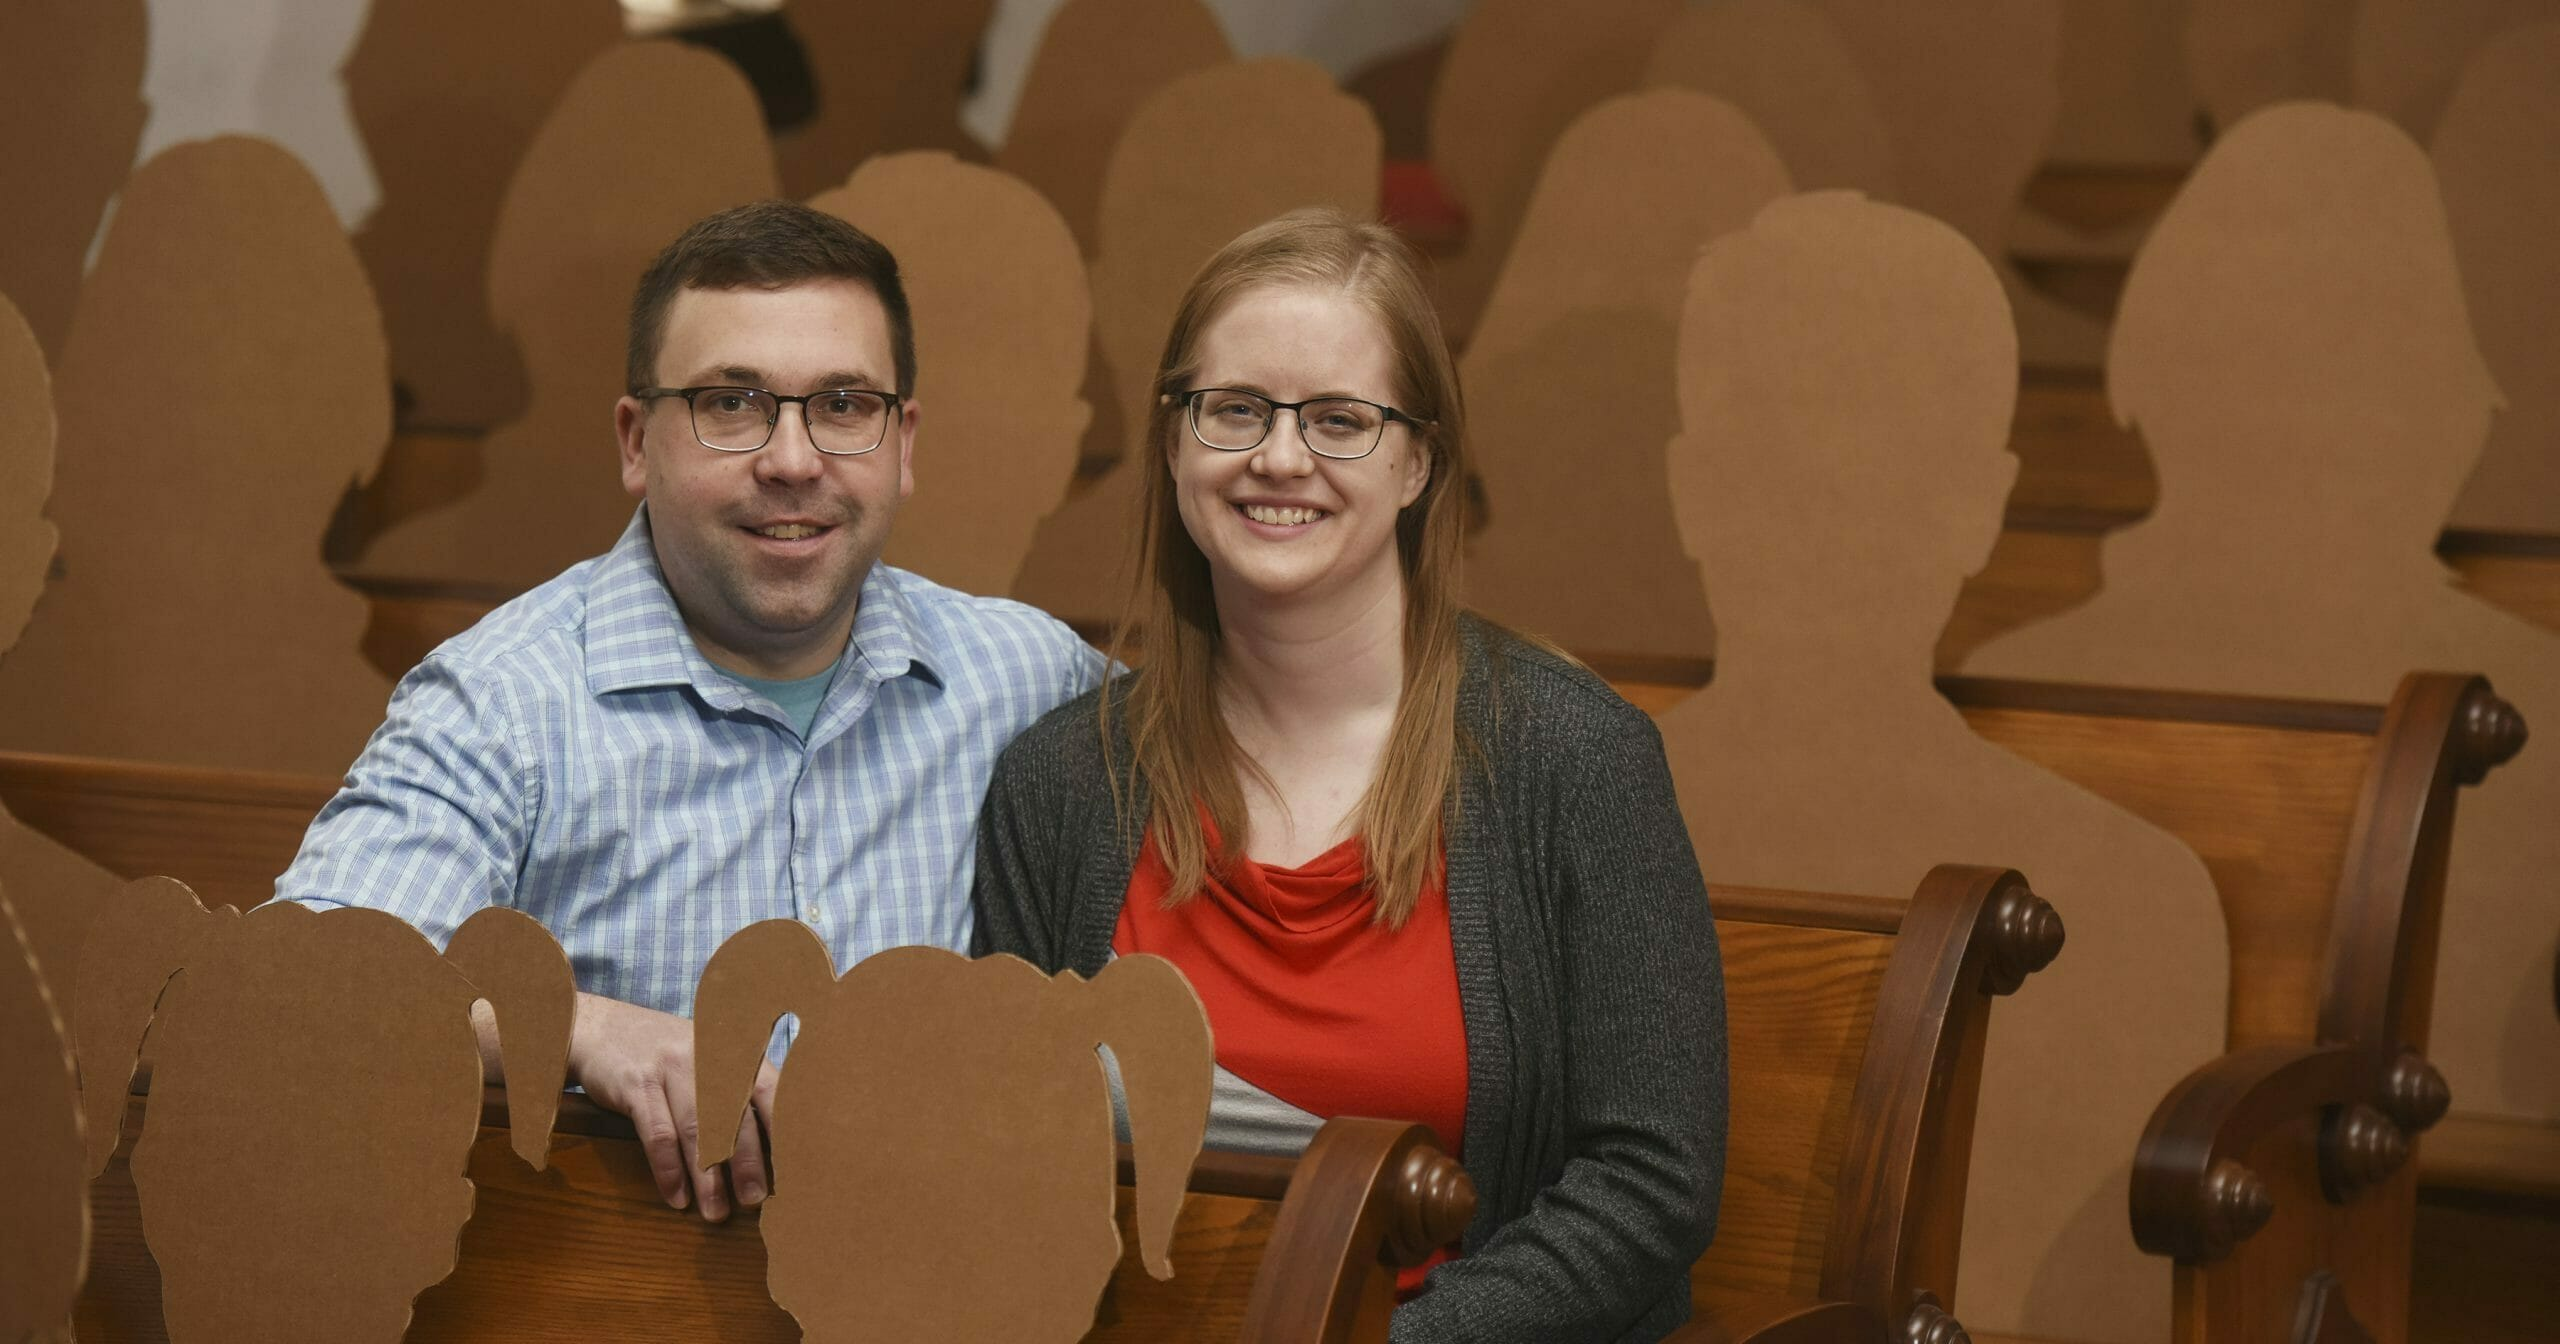 Dan Stuglik and Amy Simonson are photographed with cardboard cutouts of family and friends March 31, 2020, in Pokagon, Michigan.